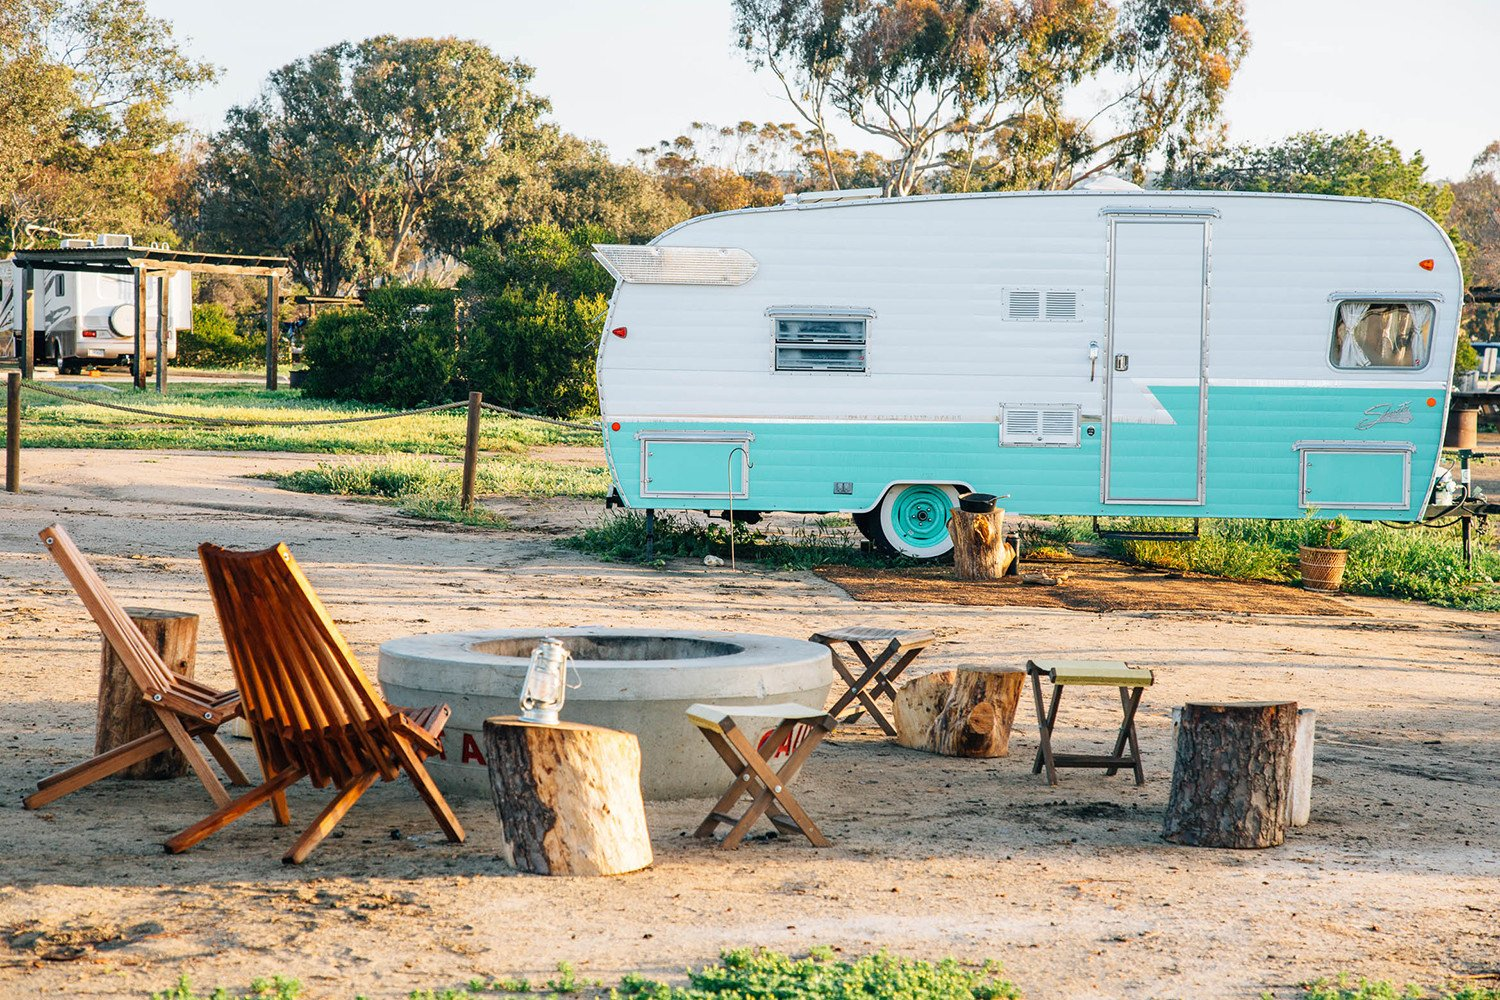 Photo 4 of 8 in 7 Vintage-Inspired Trailer Parks, Airstreams and All